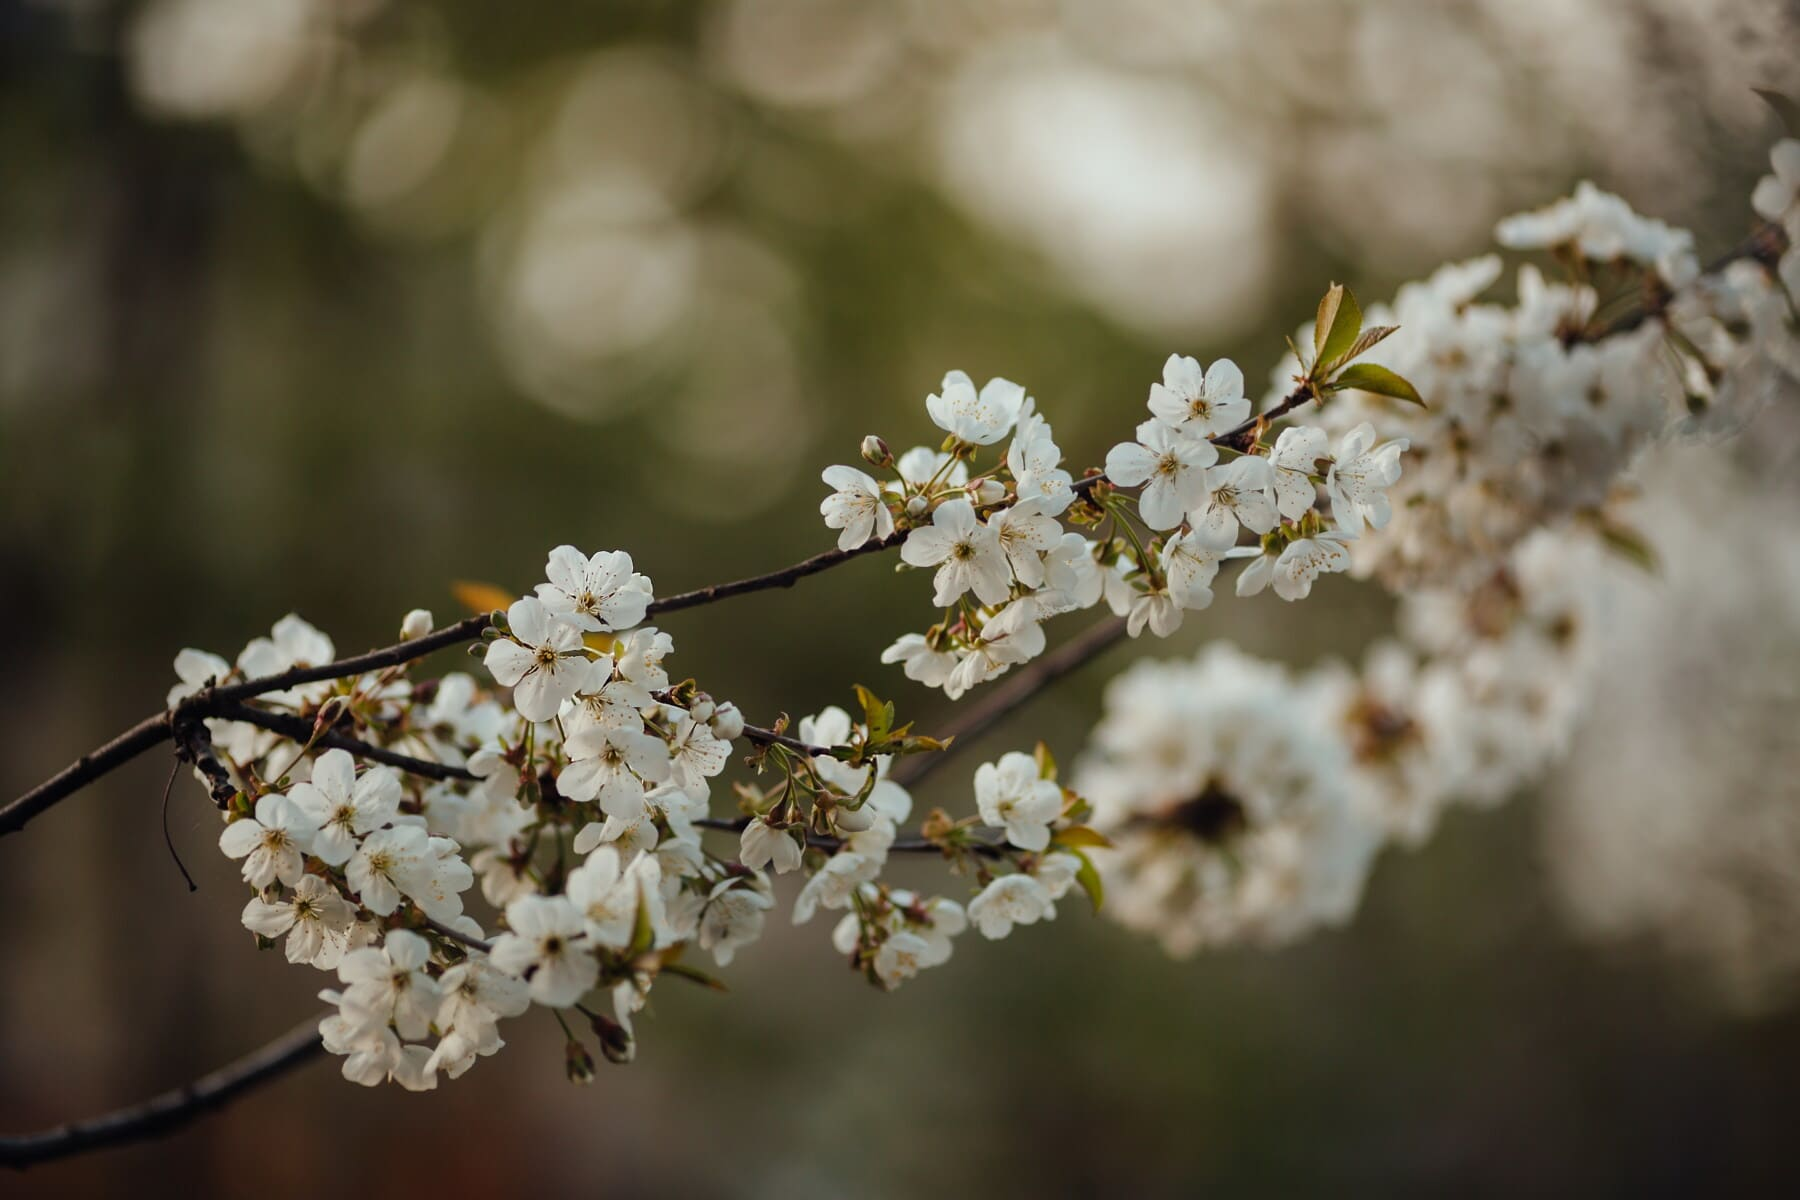 white flower, cherry, fruit tree, tree, spring time, morning, branches, nature, plant, herb